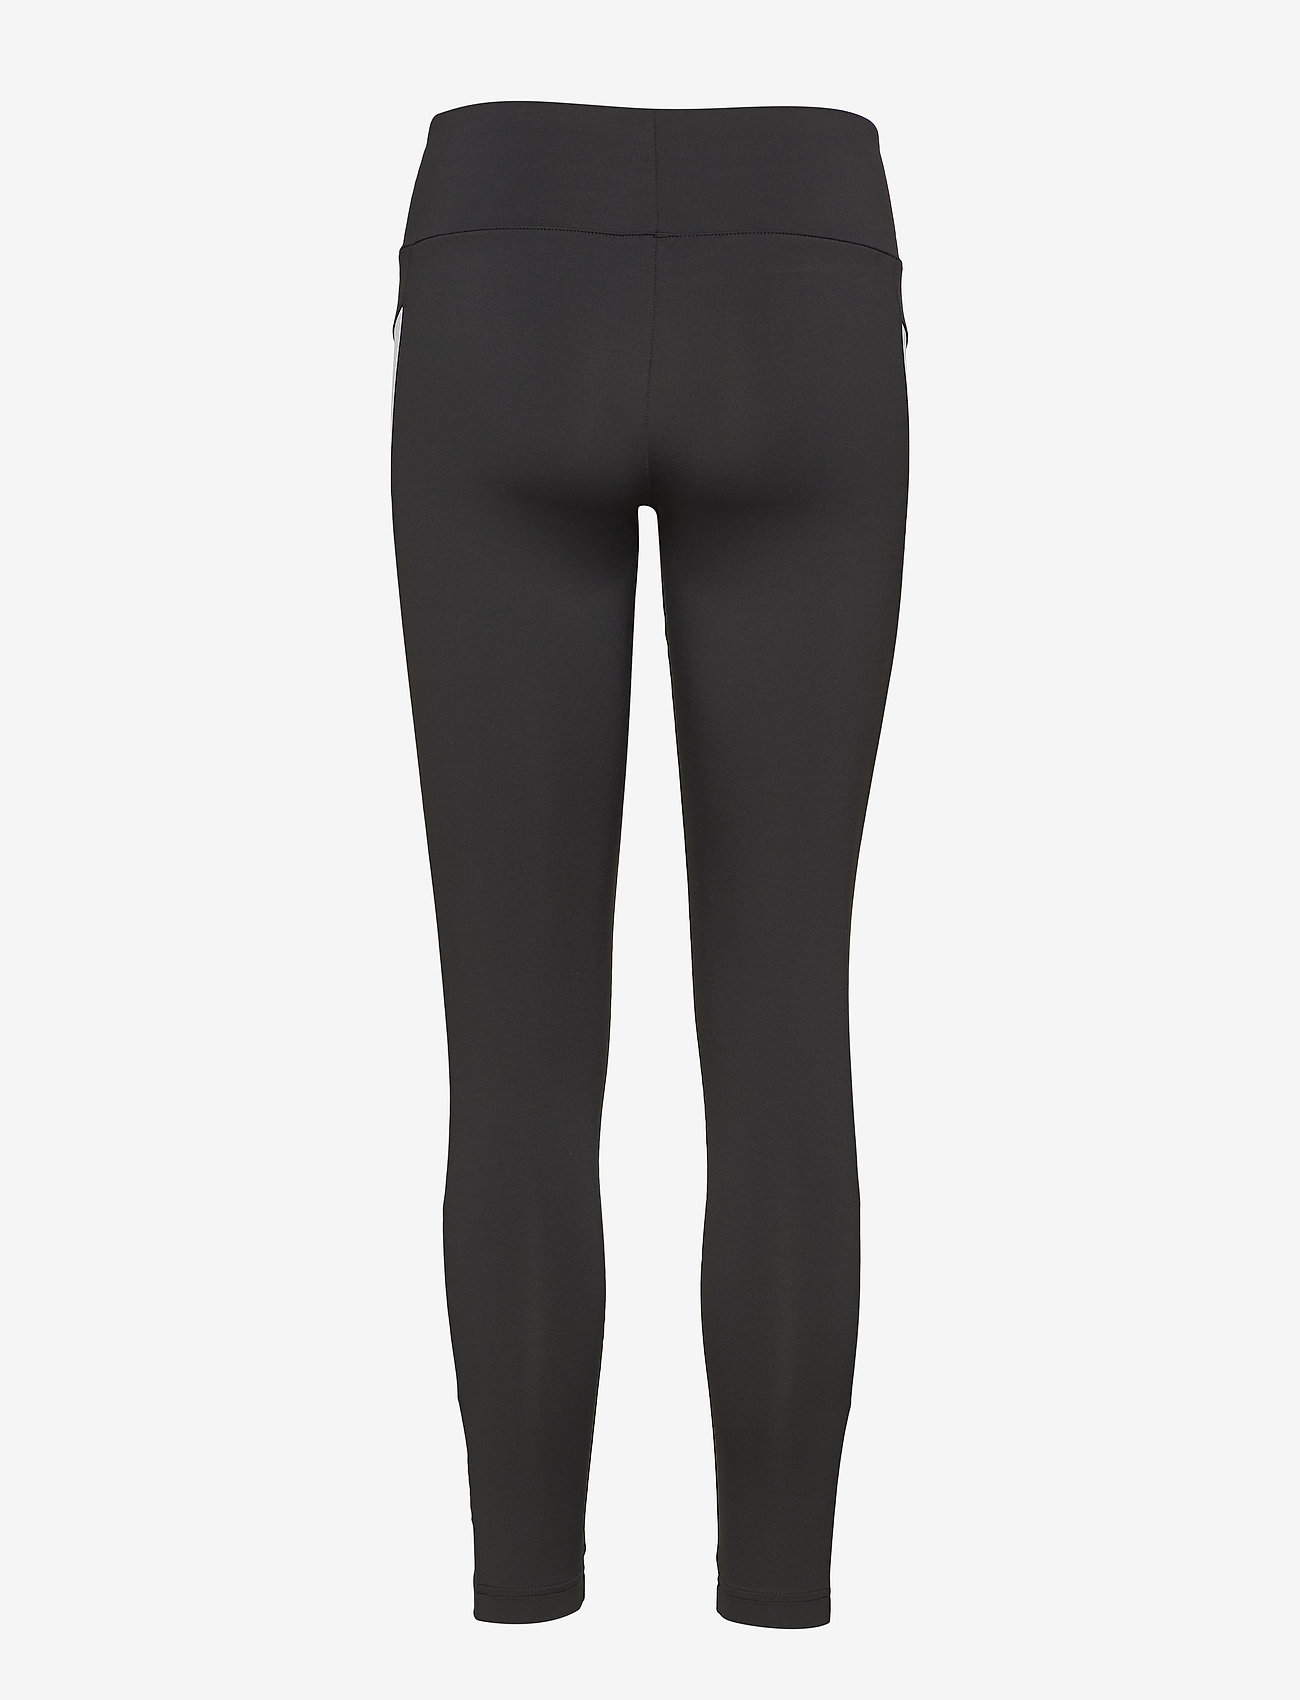 Reebok Classics - AC BLOCKING LEGGING - running & training tights - black